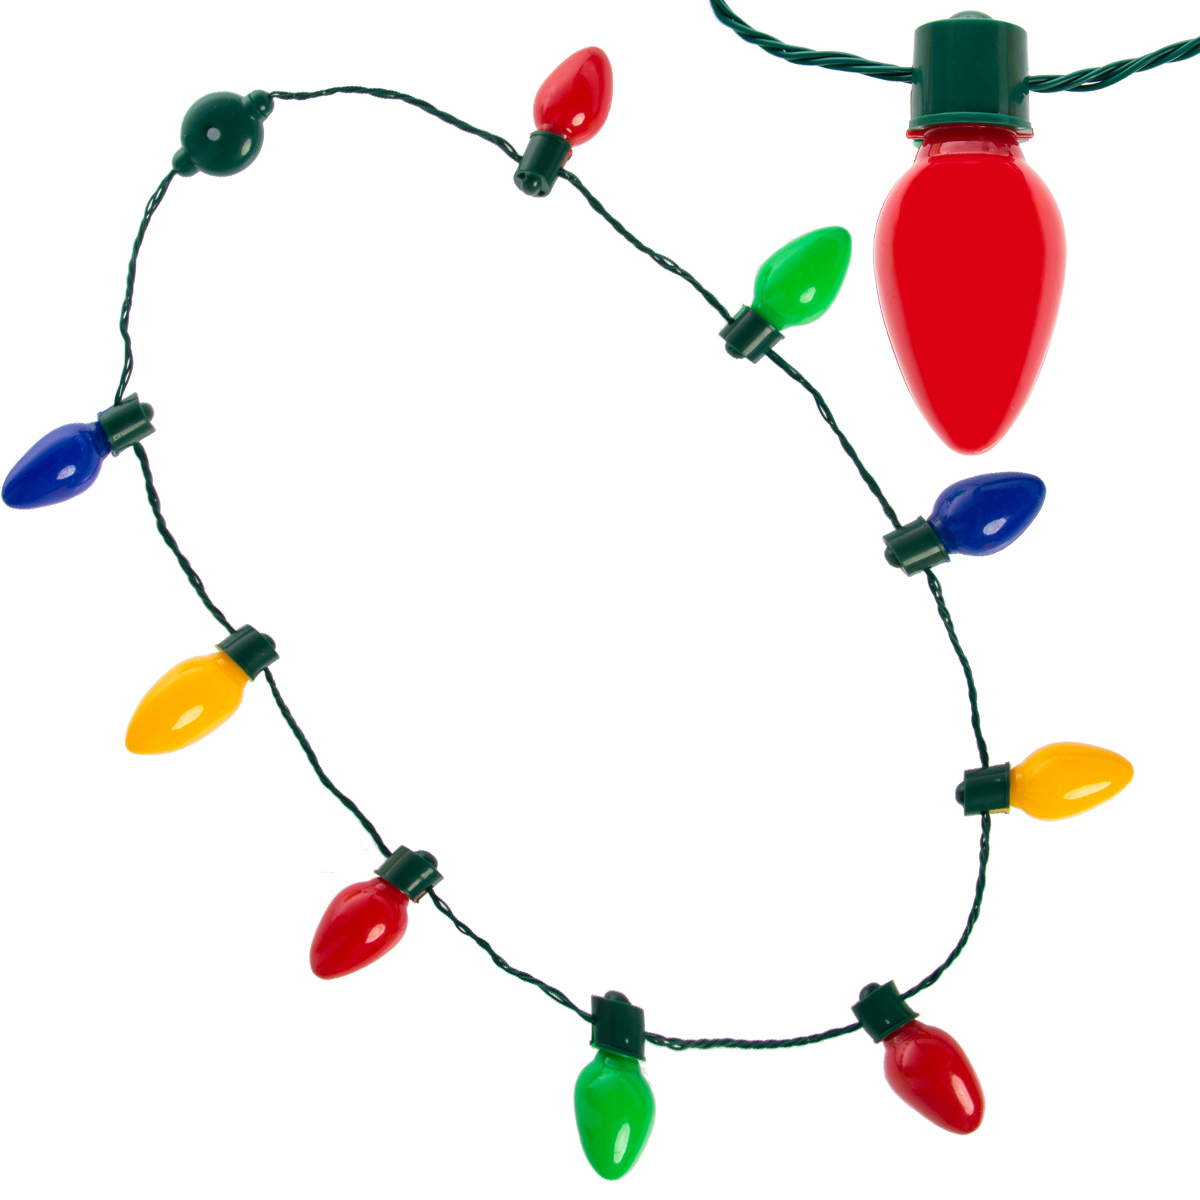 Simply Genius LED Light Up Christmas Necklace with Light Bulbs For Kids and Adults, Party Favors, String Lights, Christmas Decorations, with Bulk Options, Batteries Included